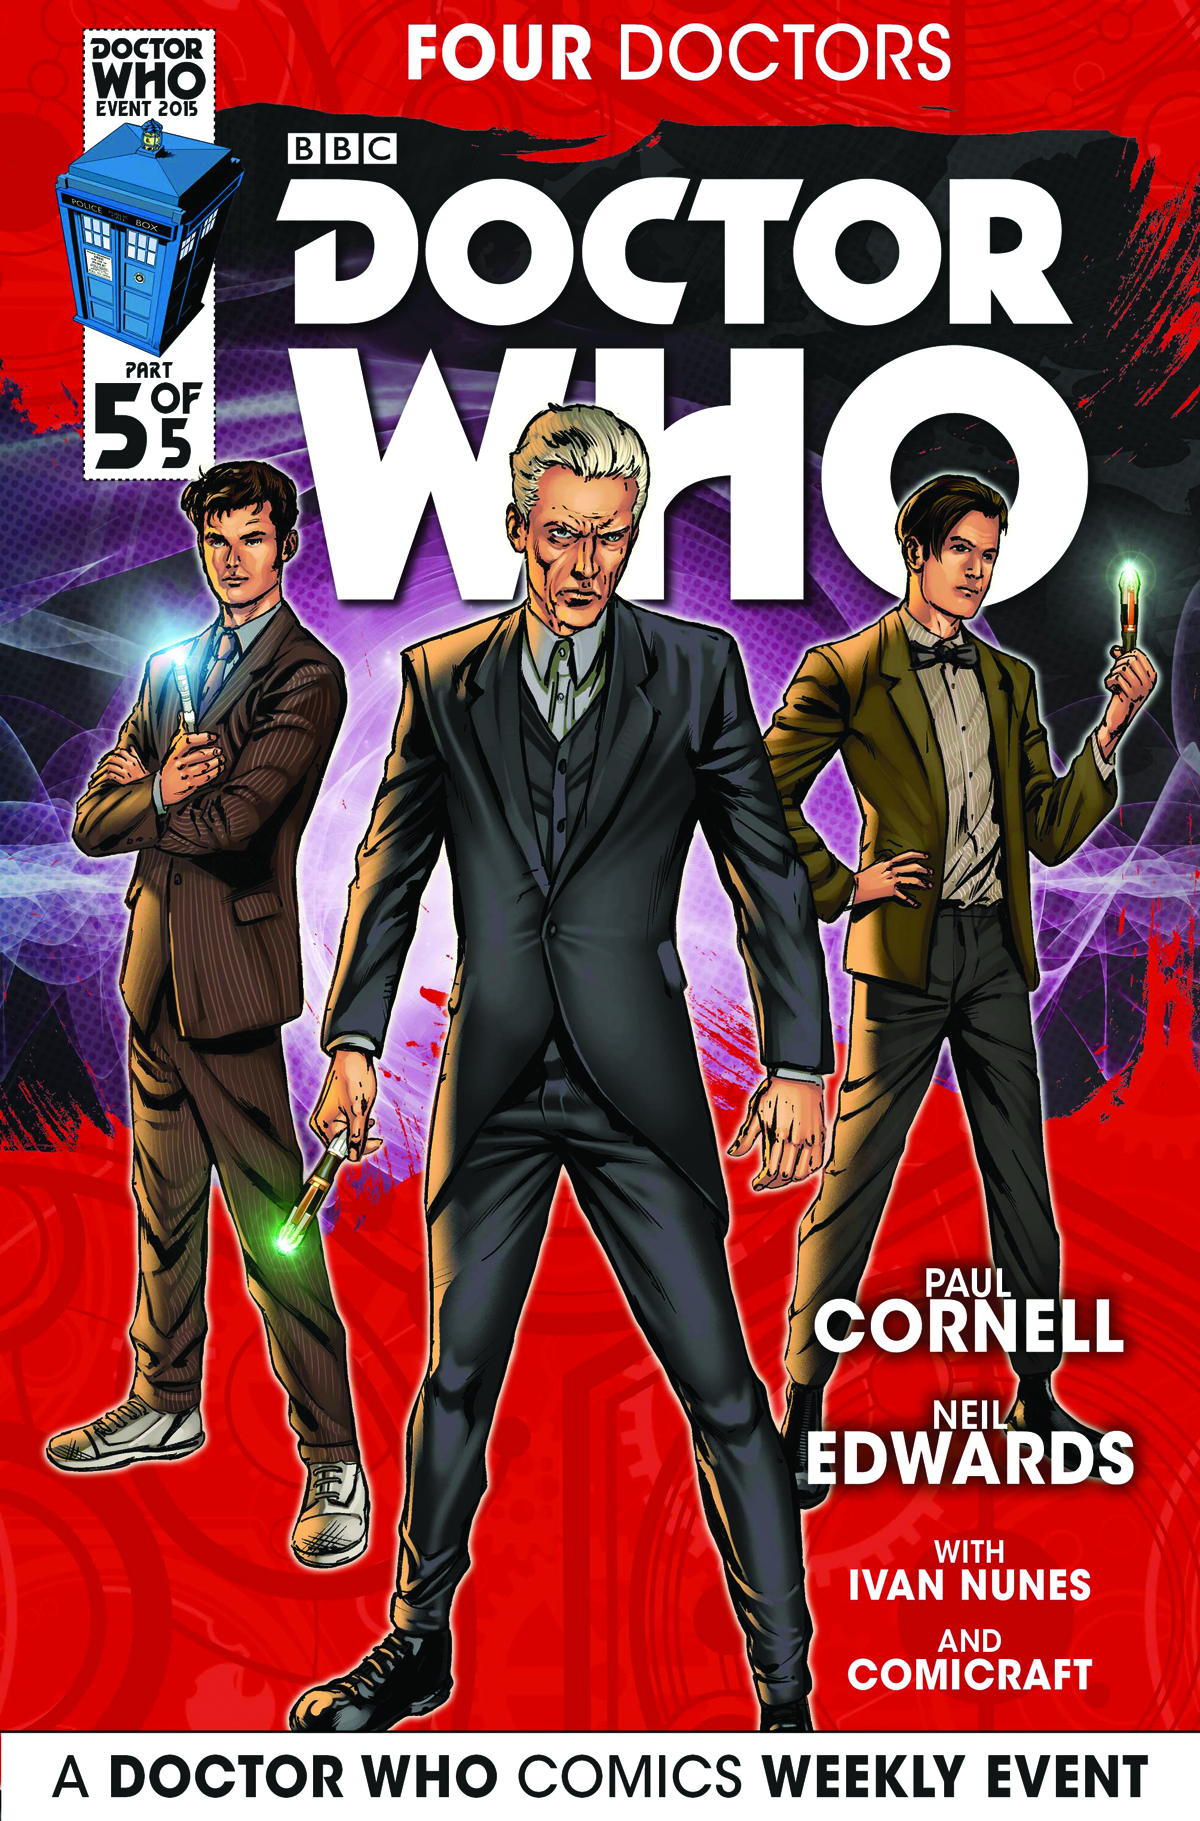 DOCTOR WHO 2015 FOUR DOCTORS #5 (OF 5) REG EDWARDS